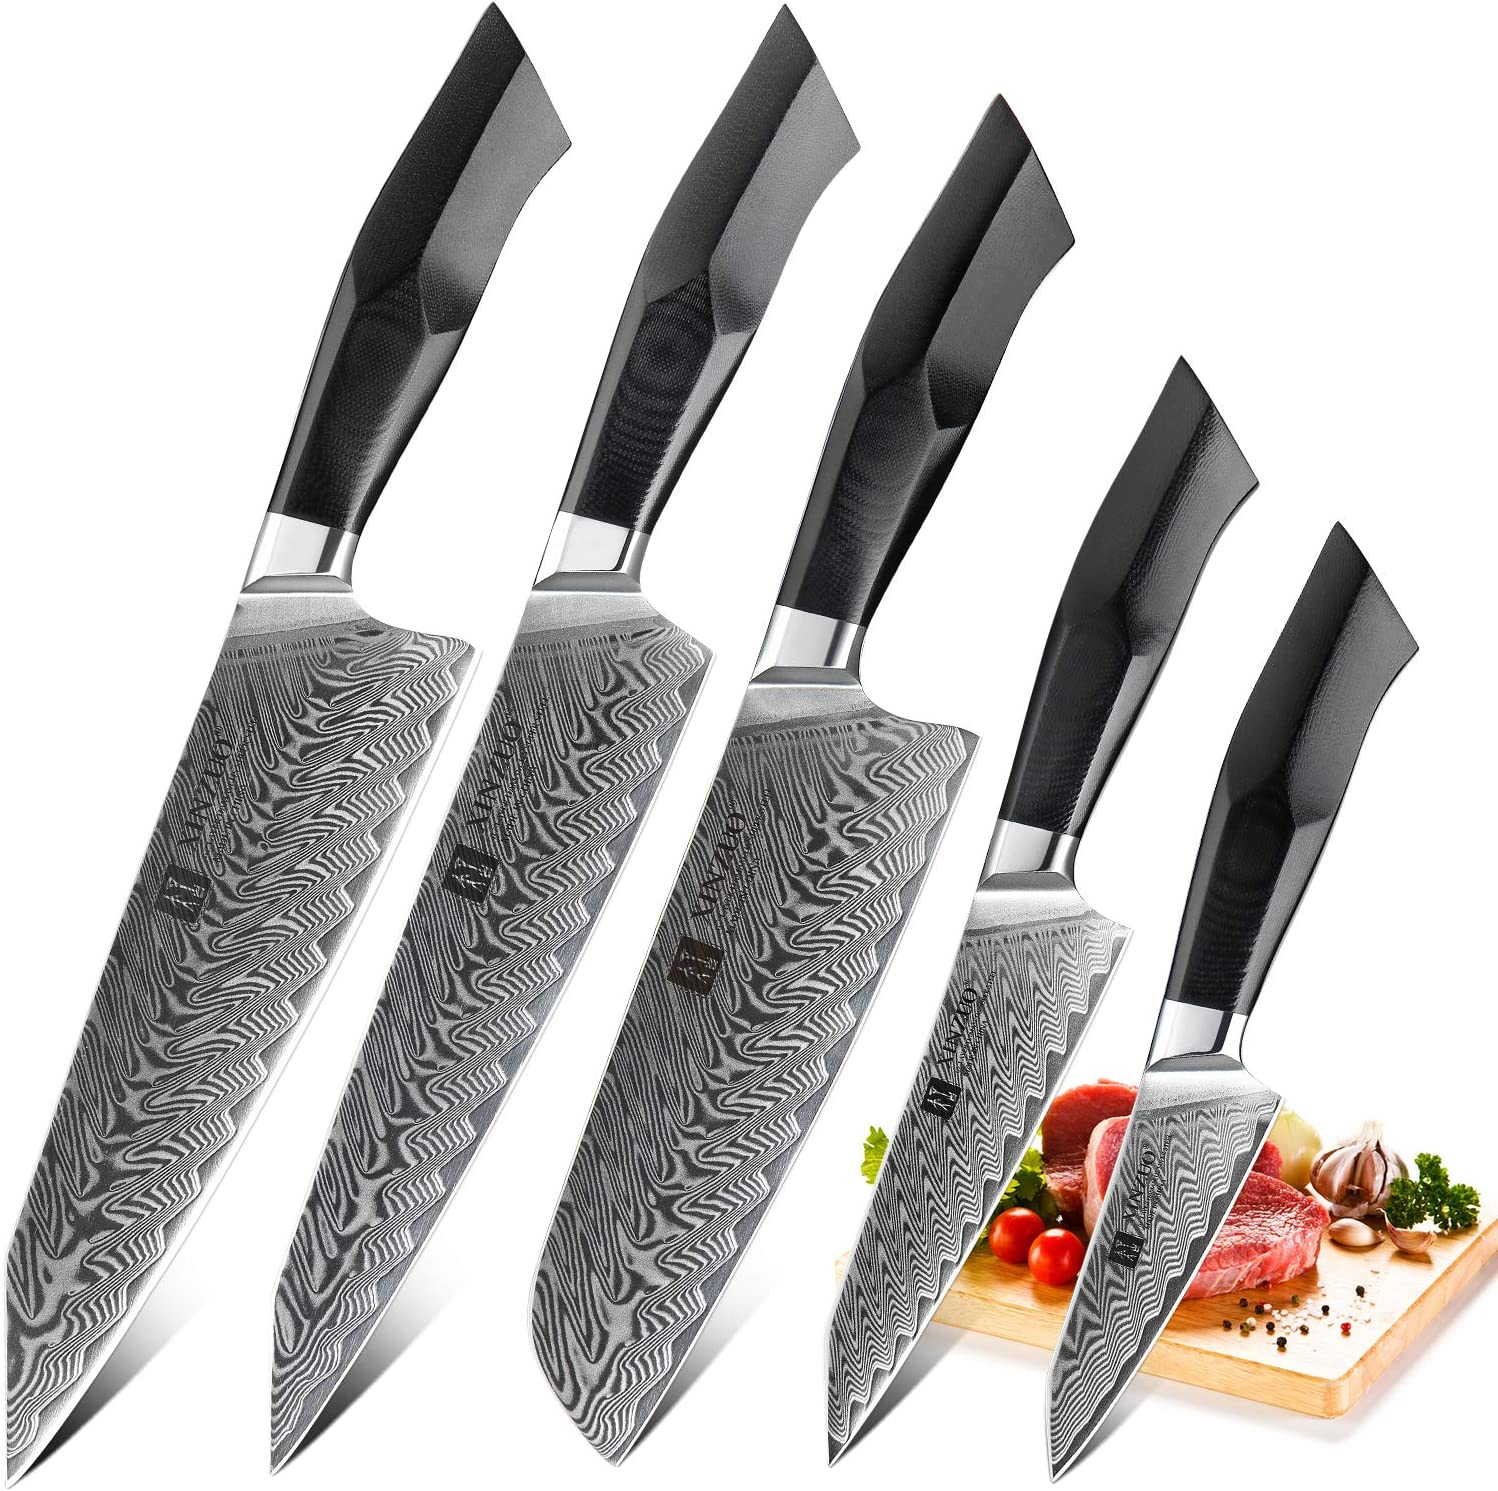 XINZUO Damascus Steel 5Pcs Kitchen Knife Set, Professional Japanese Style Knives, High Carbon Steel Sharp Chef Santoku Slicing Knife Utility Paring Knife, Military Grade G10 Handle -Feng Series